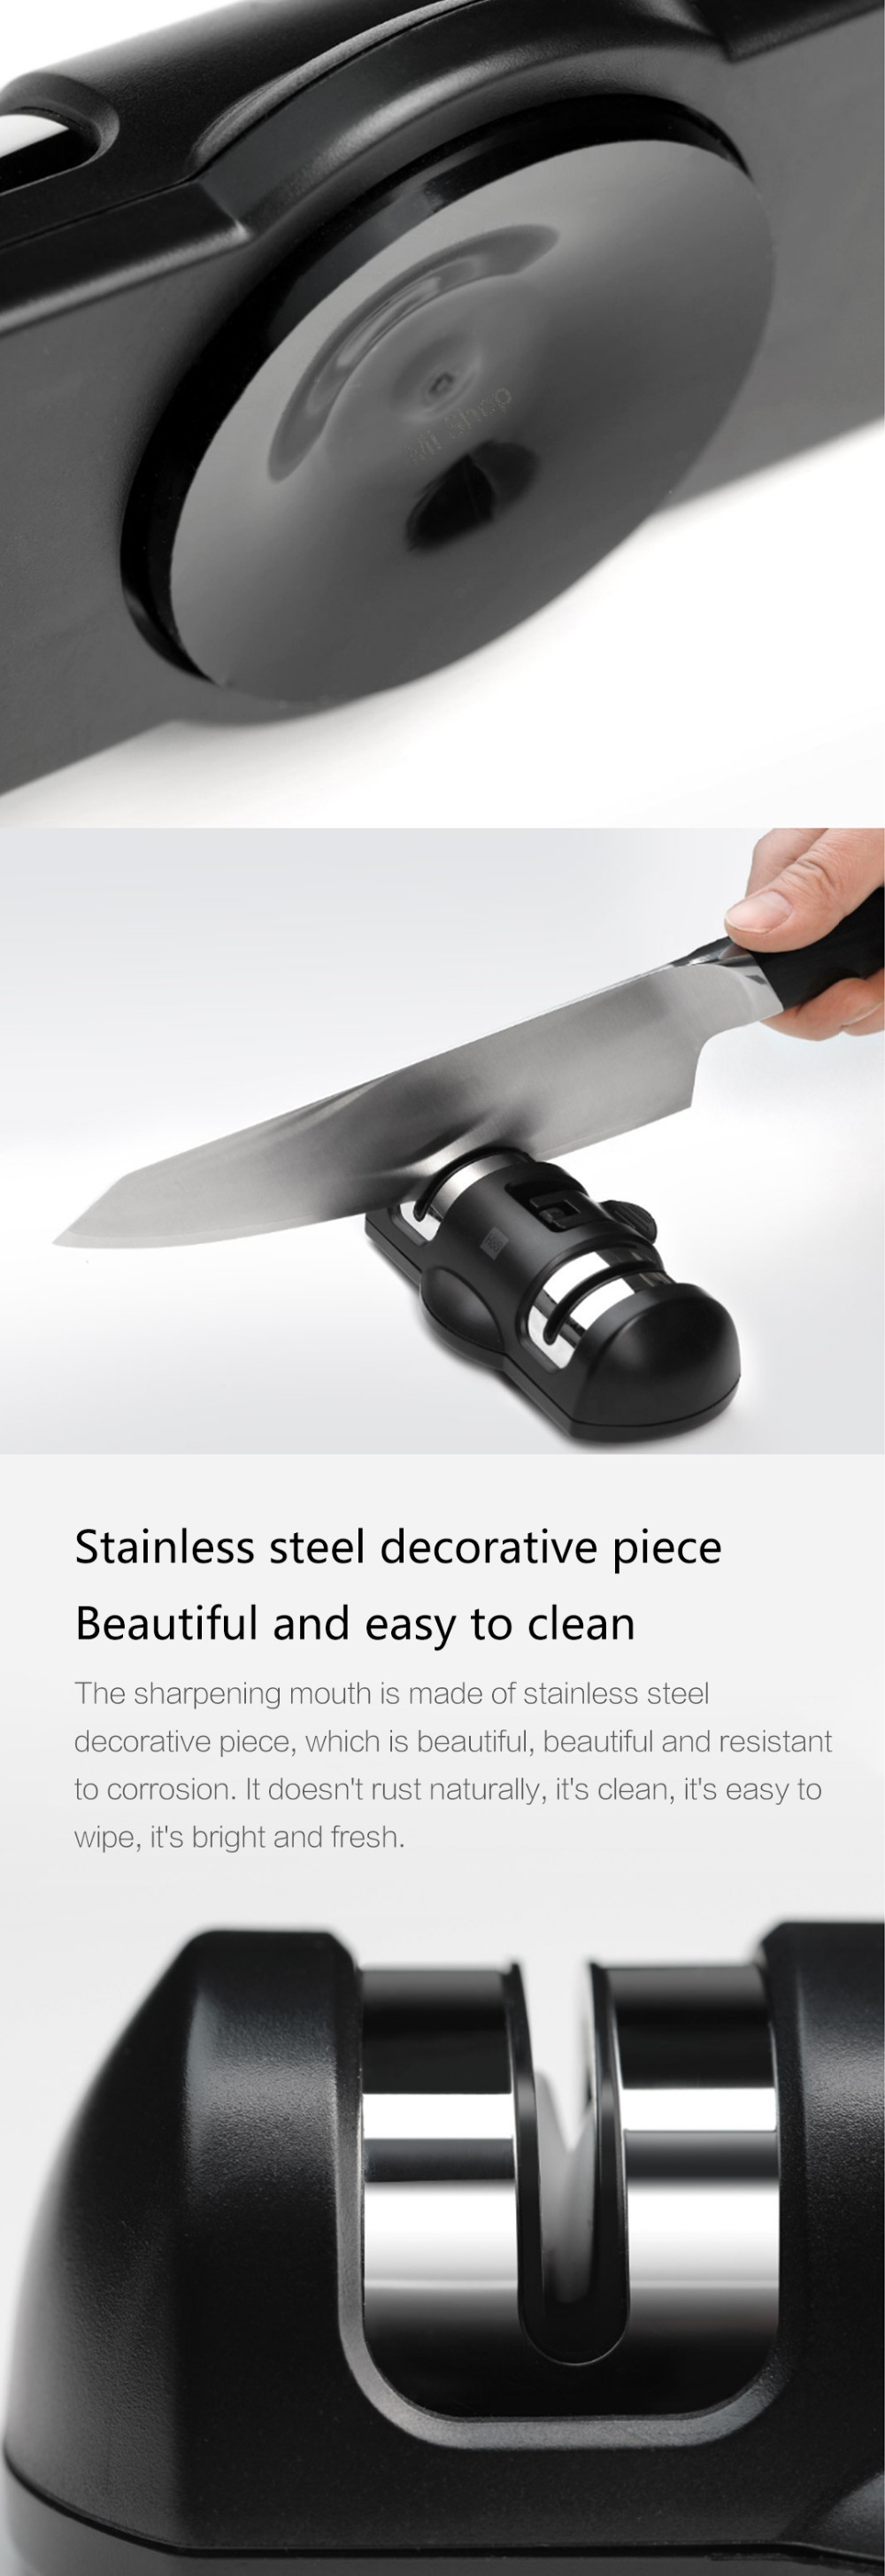 Xiaomi Mijia Huohou Knife Sharpener1310